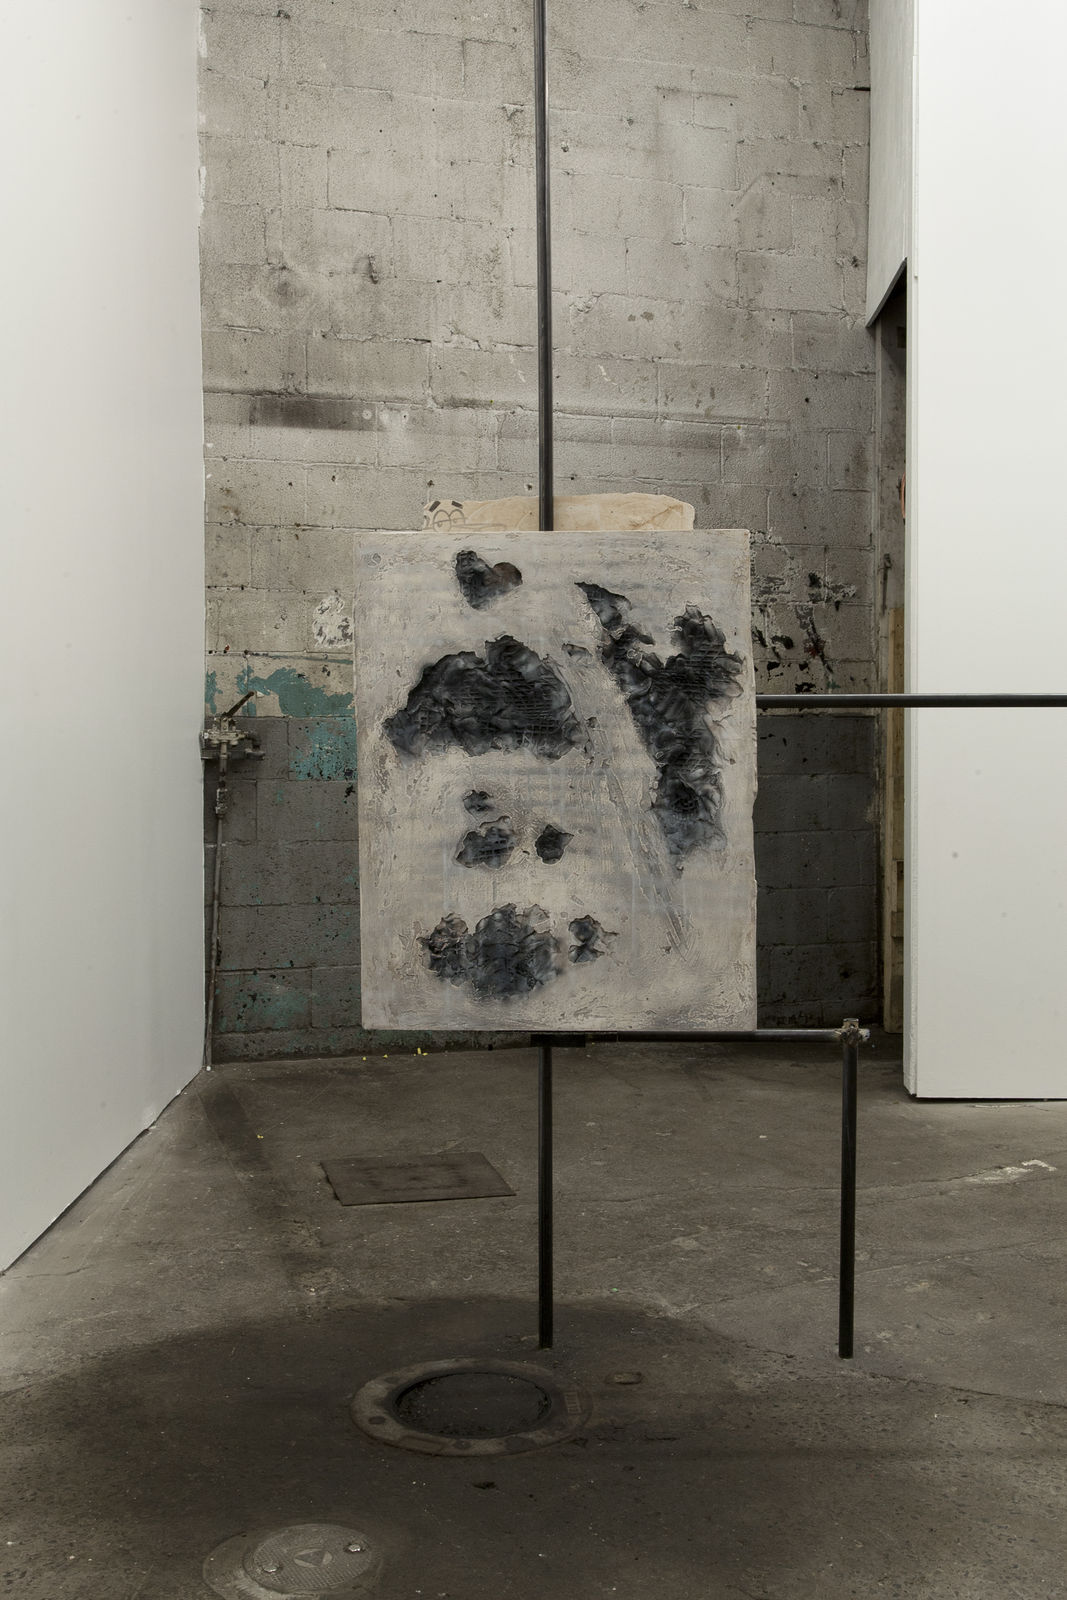 017_Brendan Flanagan. After Untitled 35. Plaster, Acrylic and Clay. 61 x 72 cm. 2016